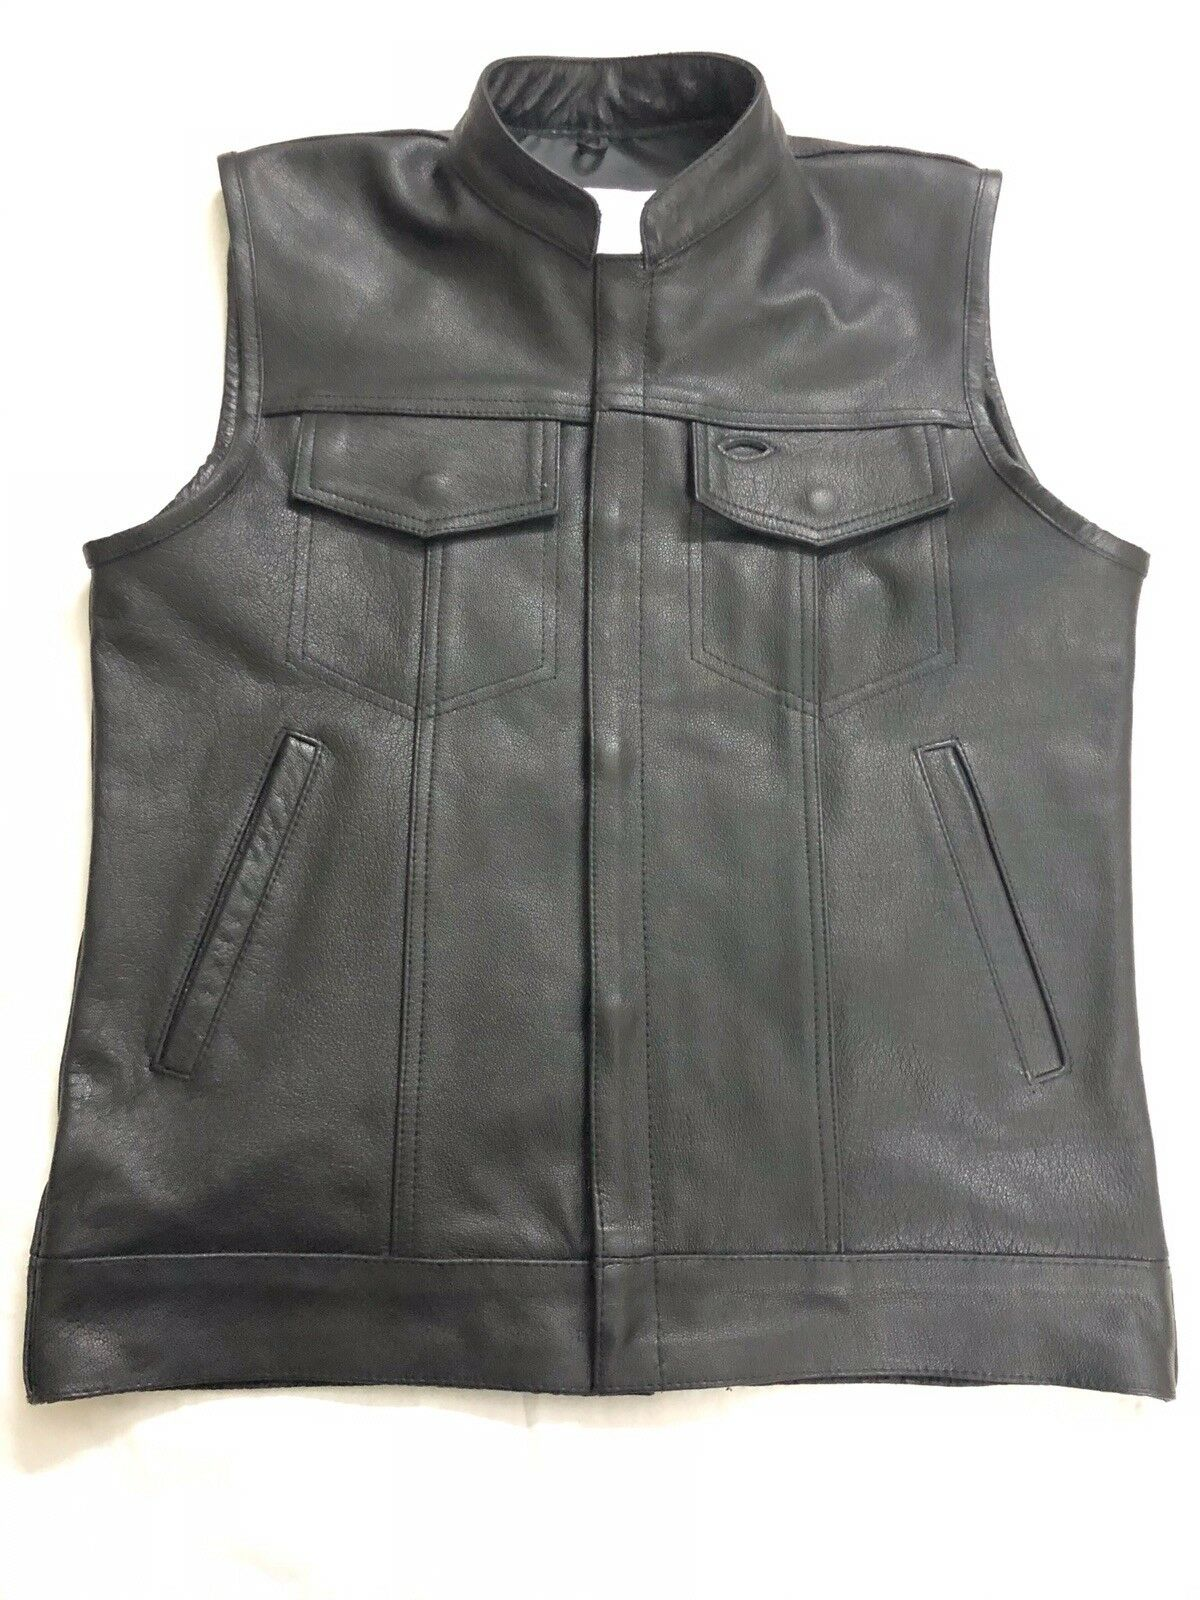 SOA men's Anarchy high quality soft Leather Vest Motorcycle Biker Club